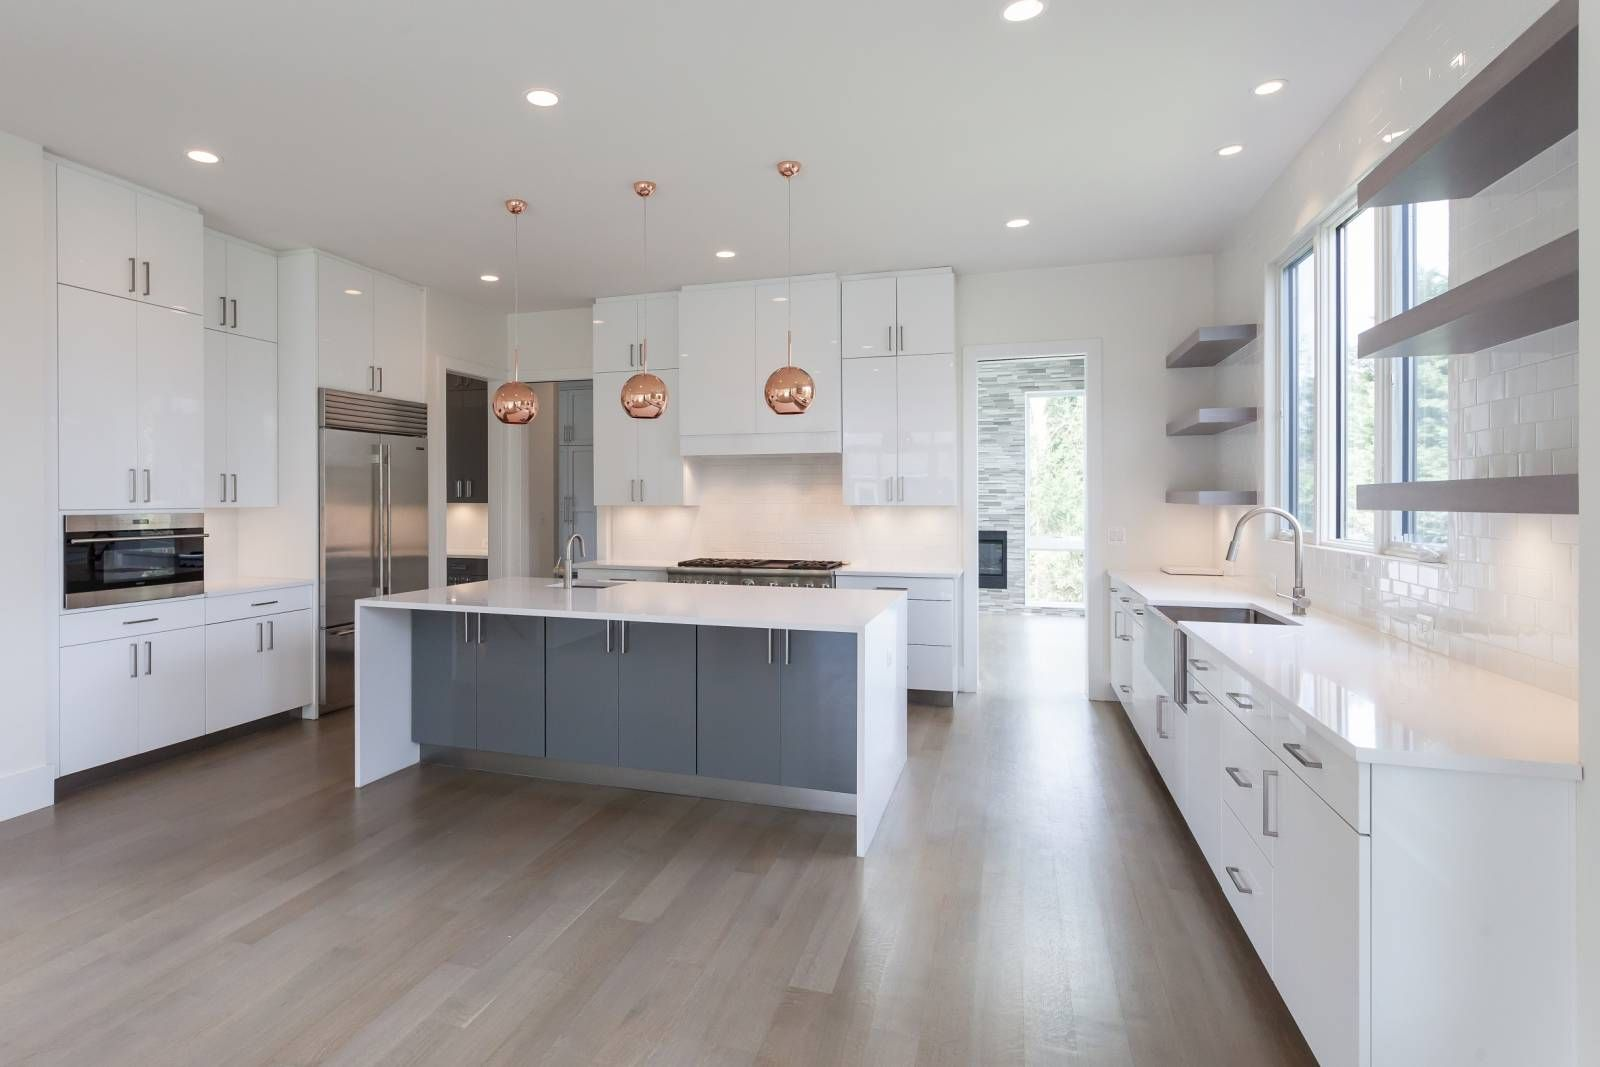 Modern Kitchen With White High Gloss Slab Cabinets Copper Pendants And Contrasting Gray Island With Wa Contrasting Kitchen Island Condo Kitchen Kitchen Decor